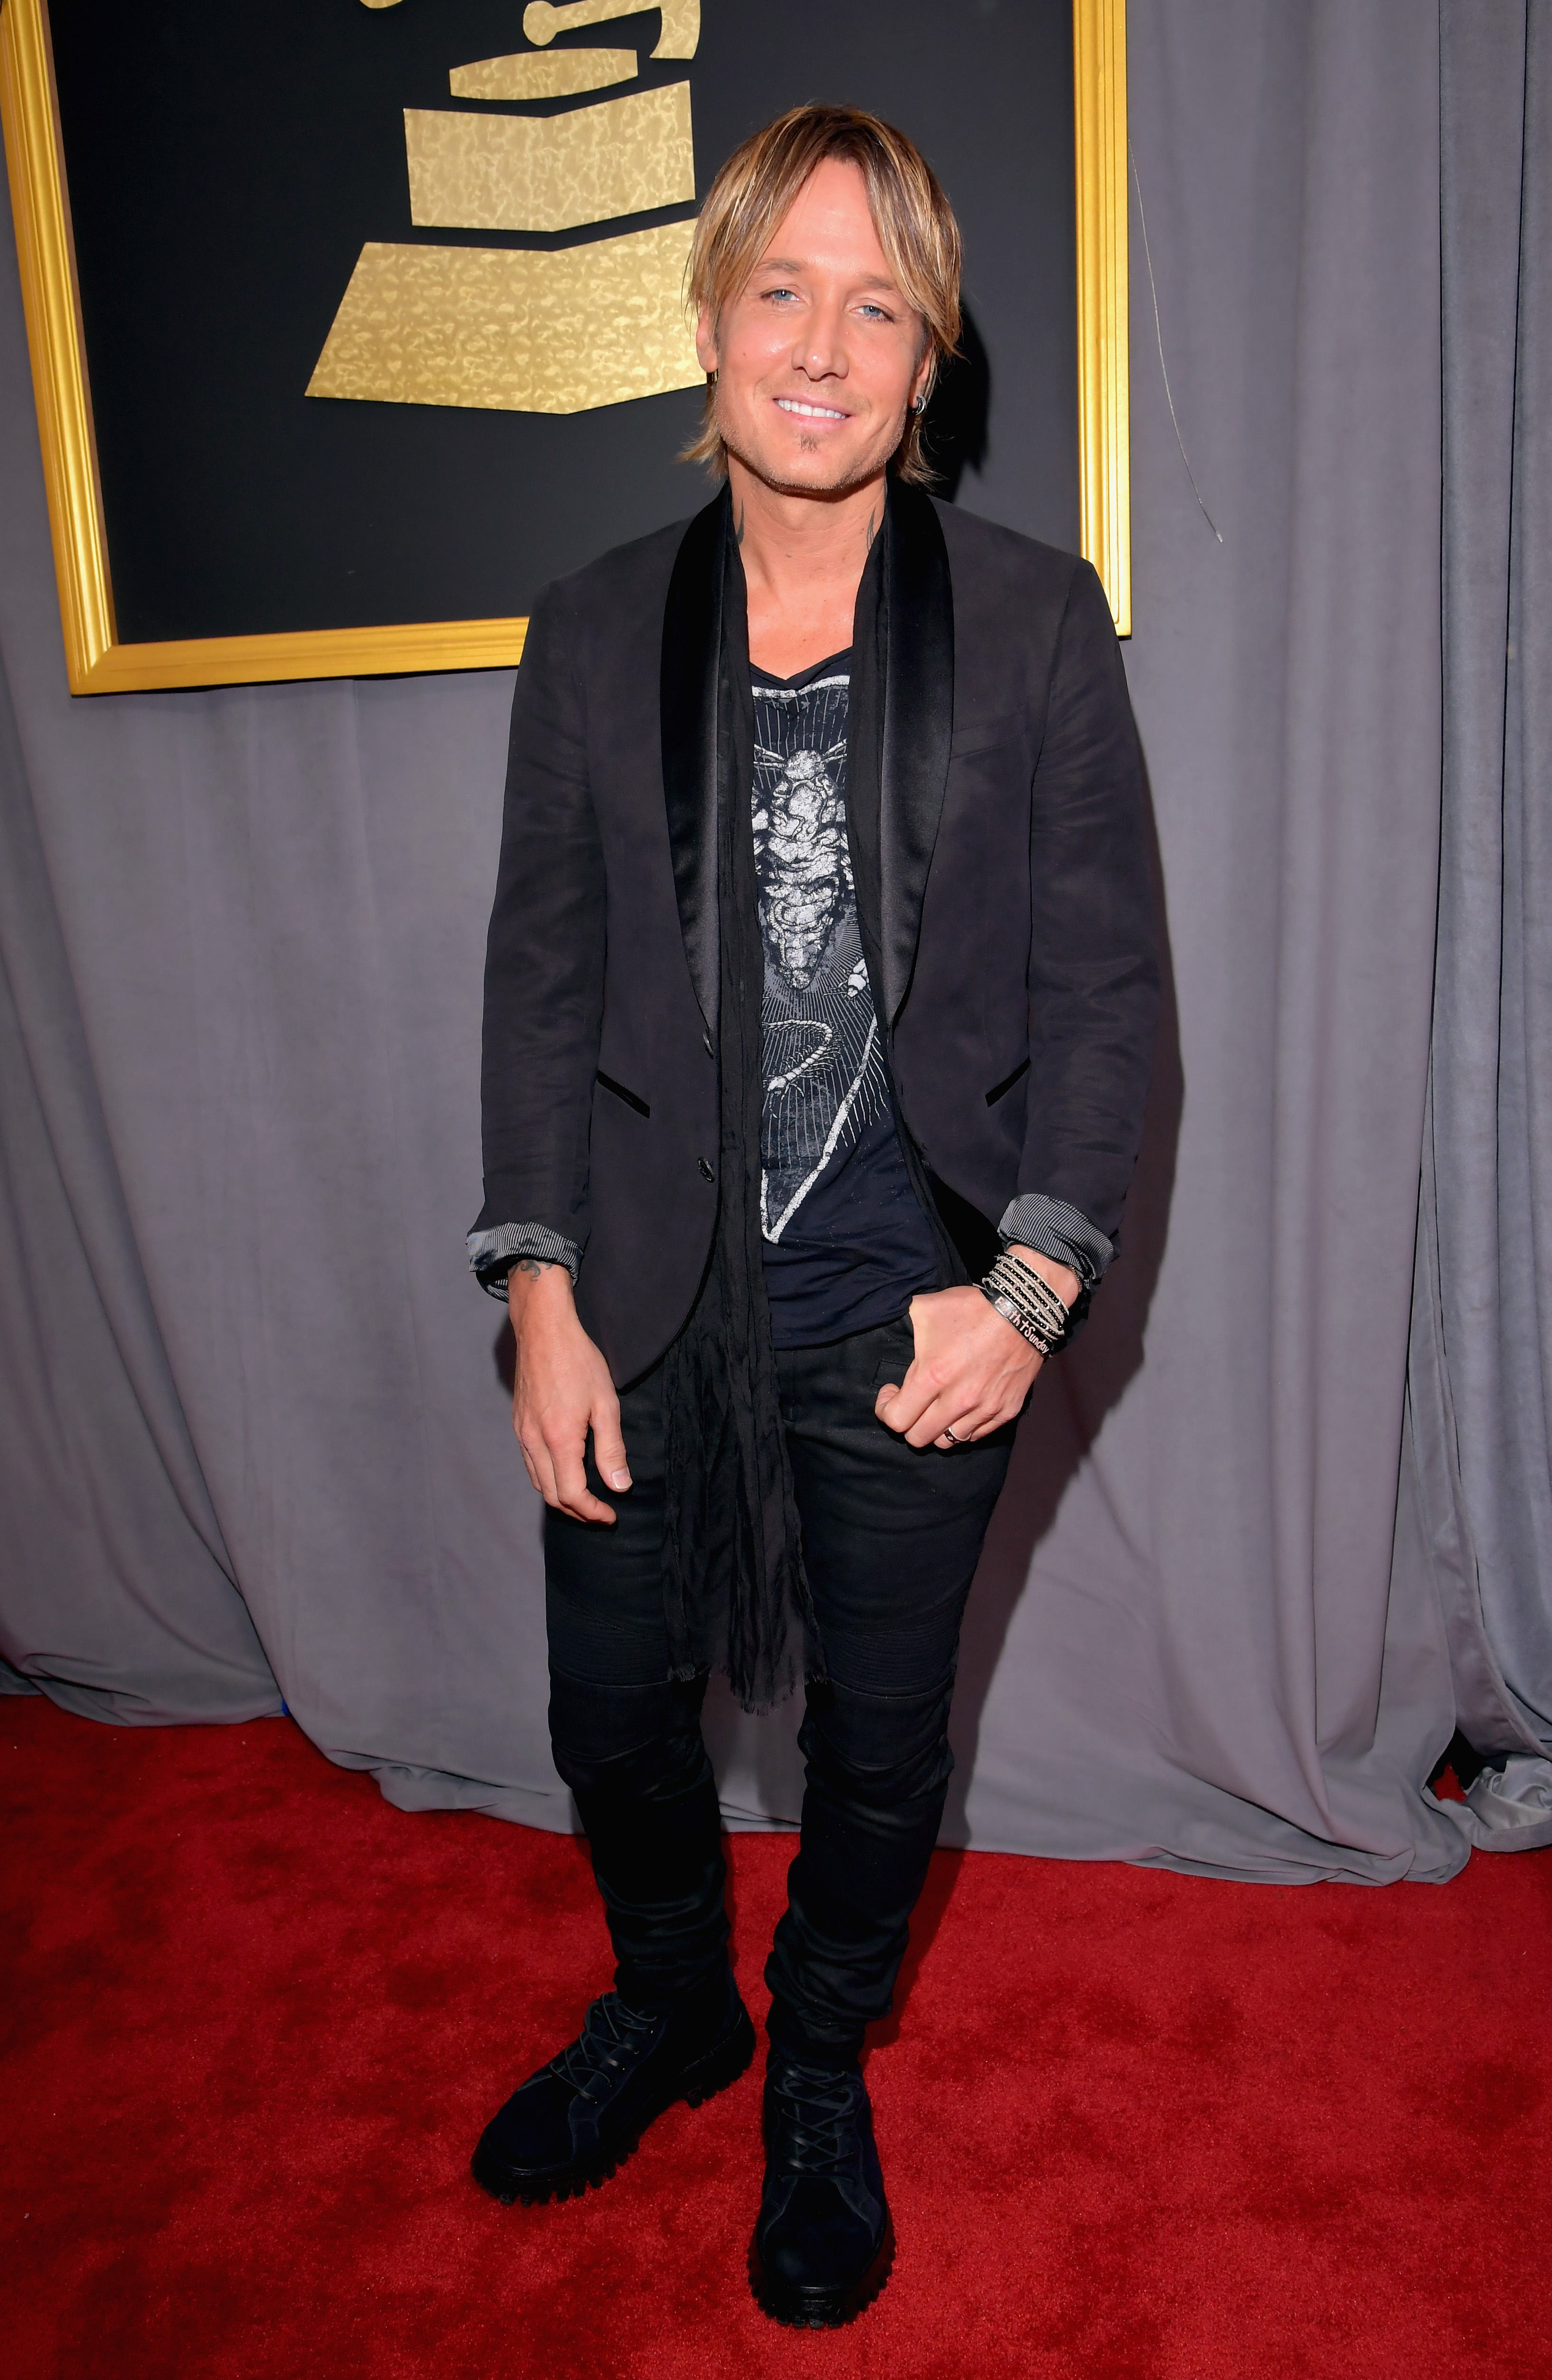 Keith Urban; Photo by Lester Cohen/WireImage